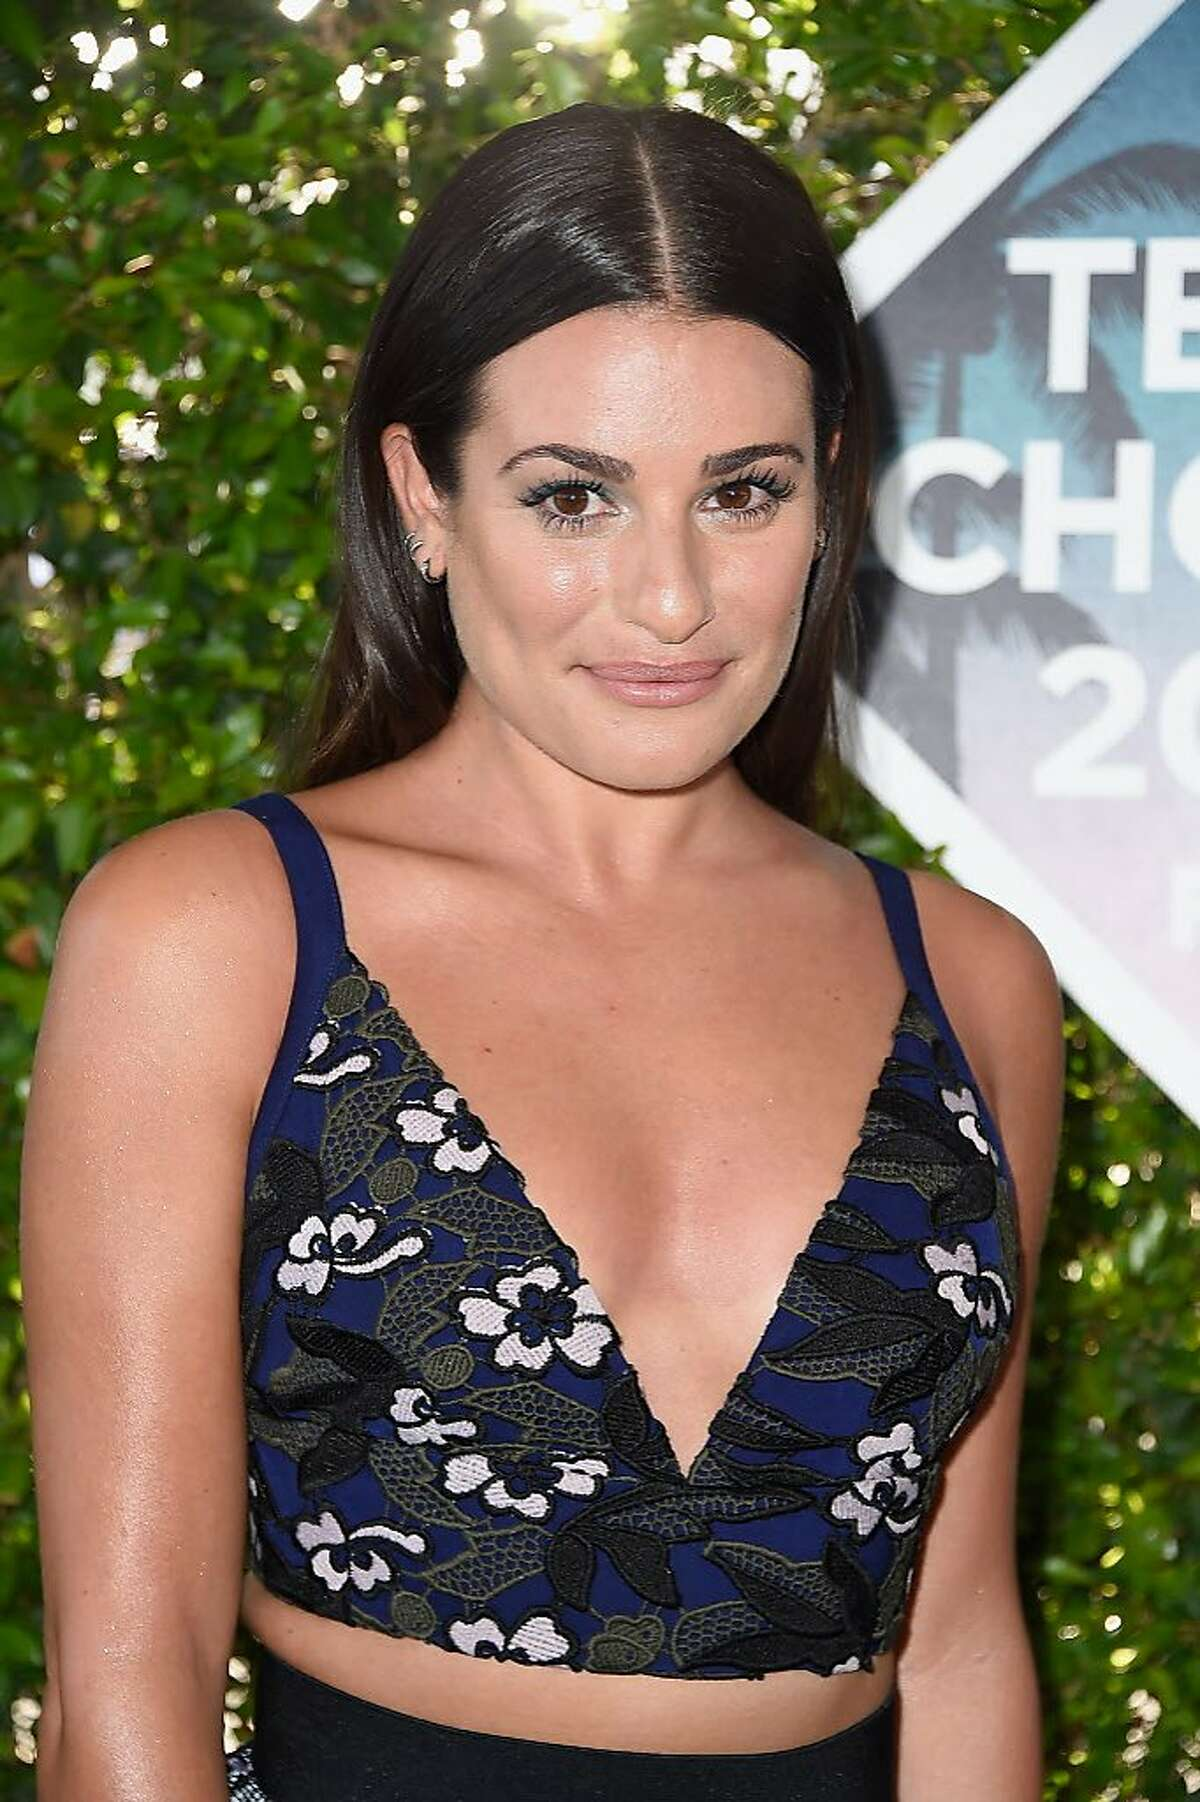 Actress Lea Michele attends the Teen Choice Awards 2016 at The Forum on July 31, 2016 in Inglewood, California.